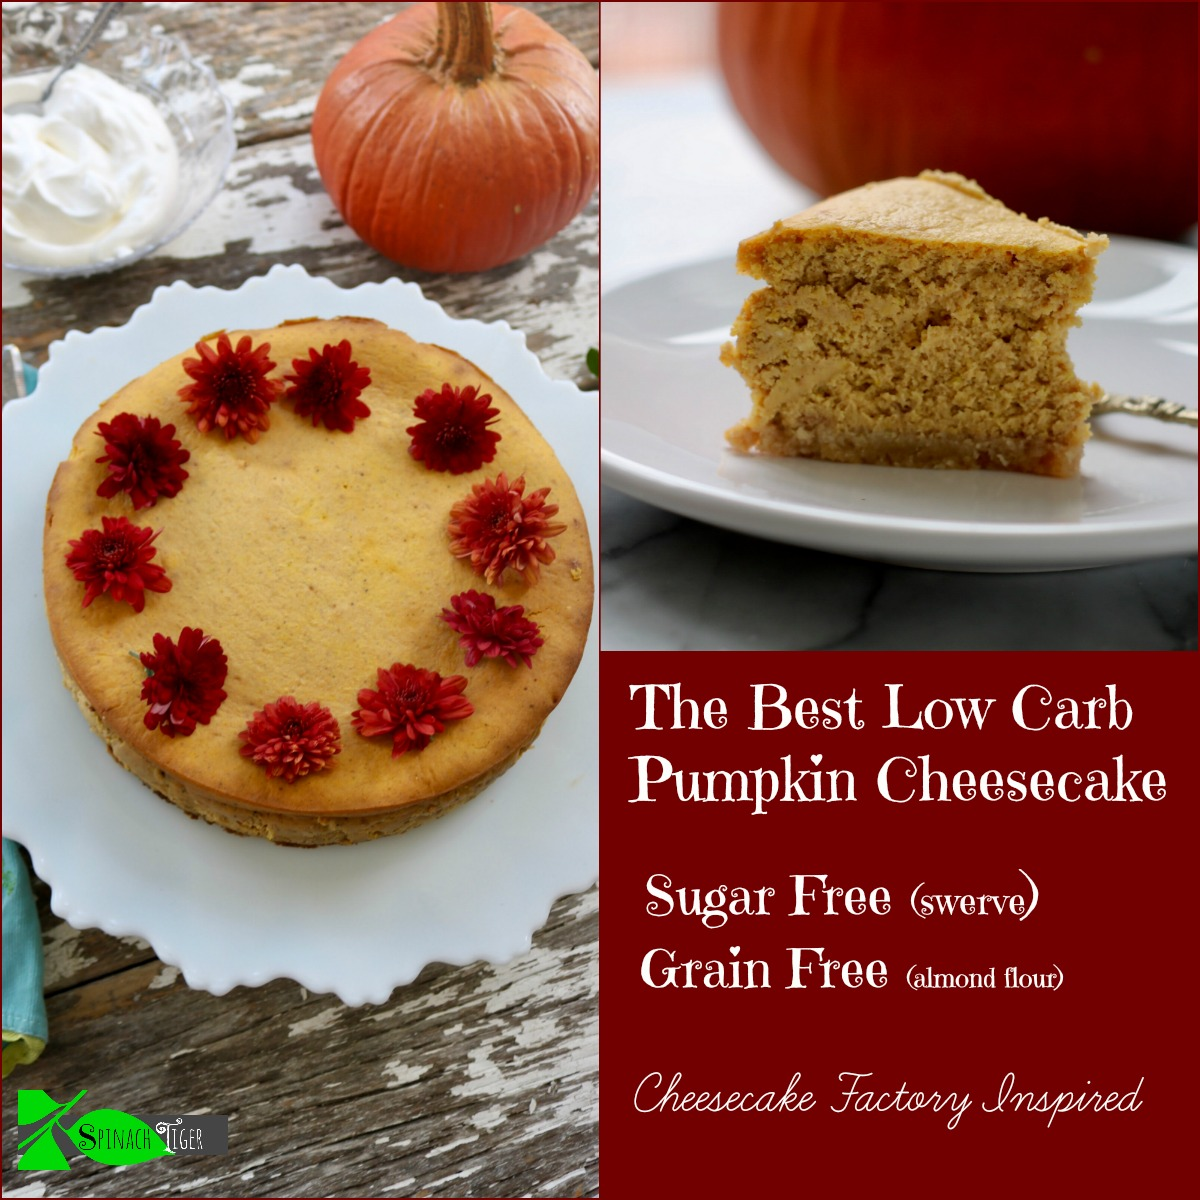 Best Pumpkin Dessert Recipes, Low Carb Pumpkin Cheesecake from Spinach Tiger